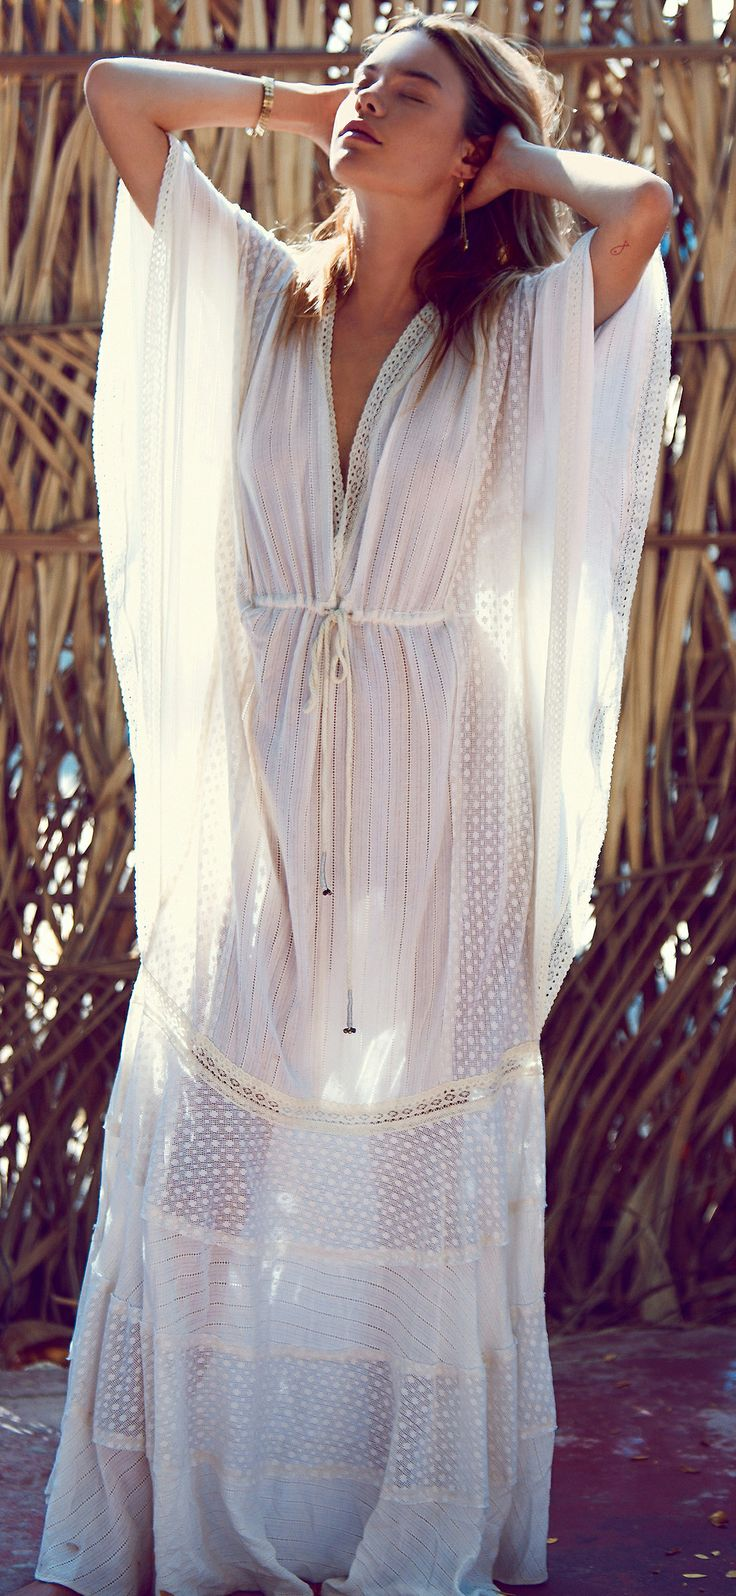 Boho caftan. Looks kind of perfect for Karachi's weather at the moment.